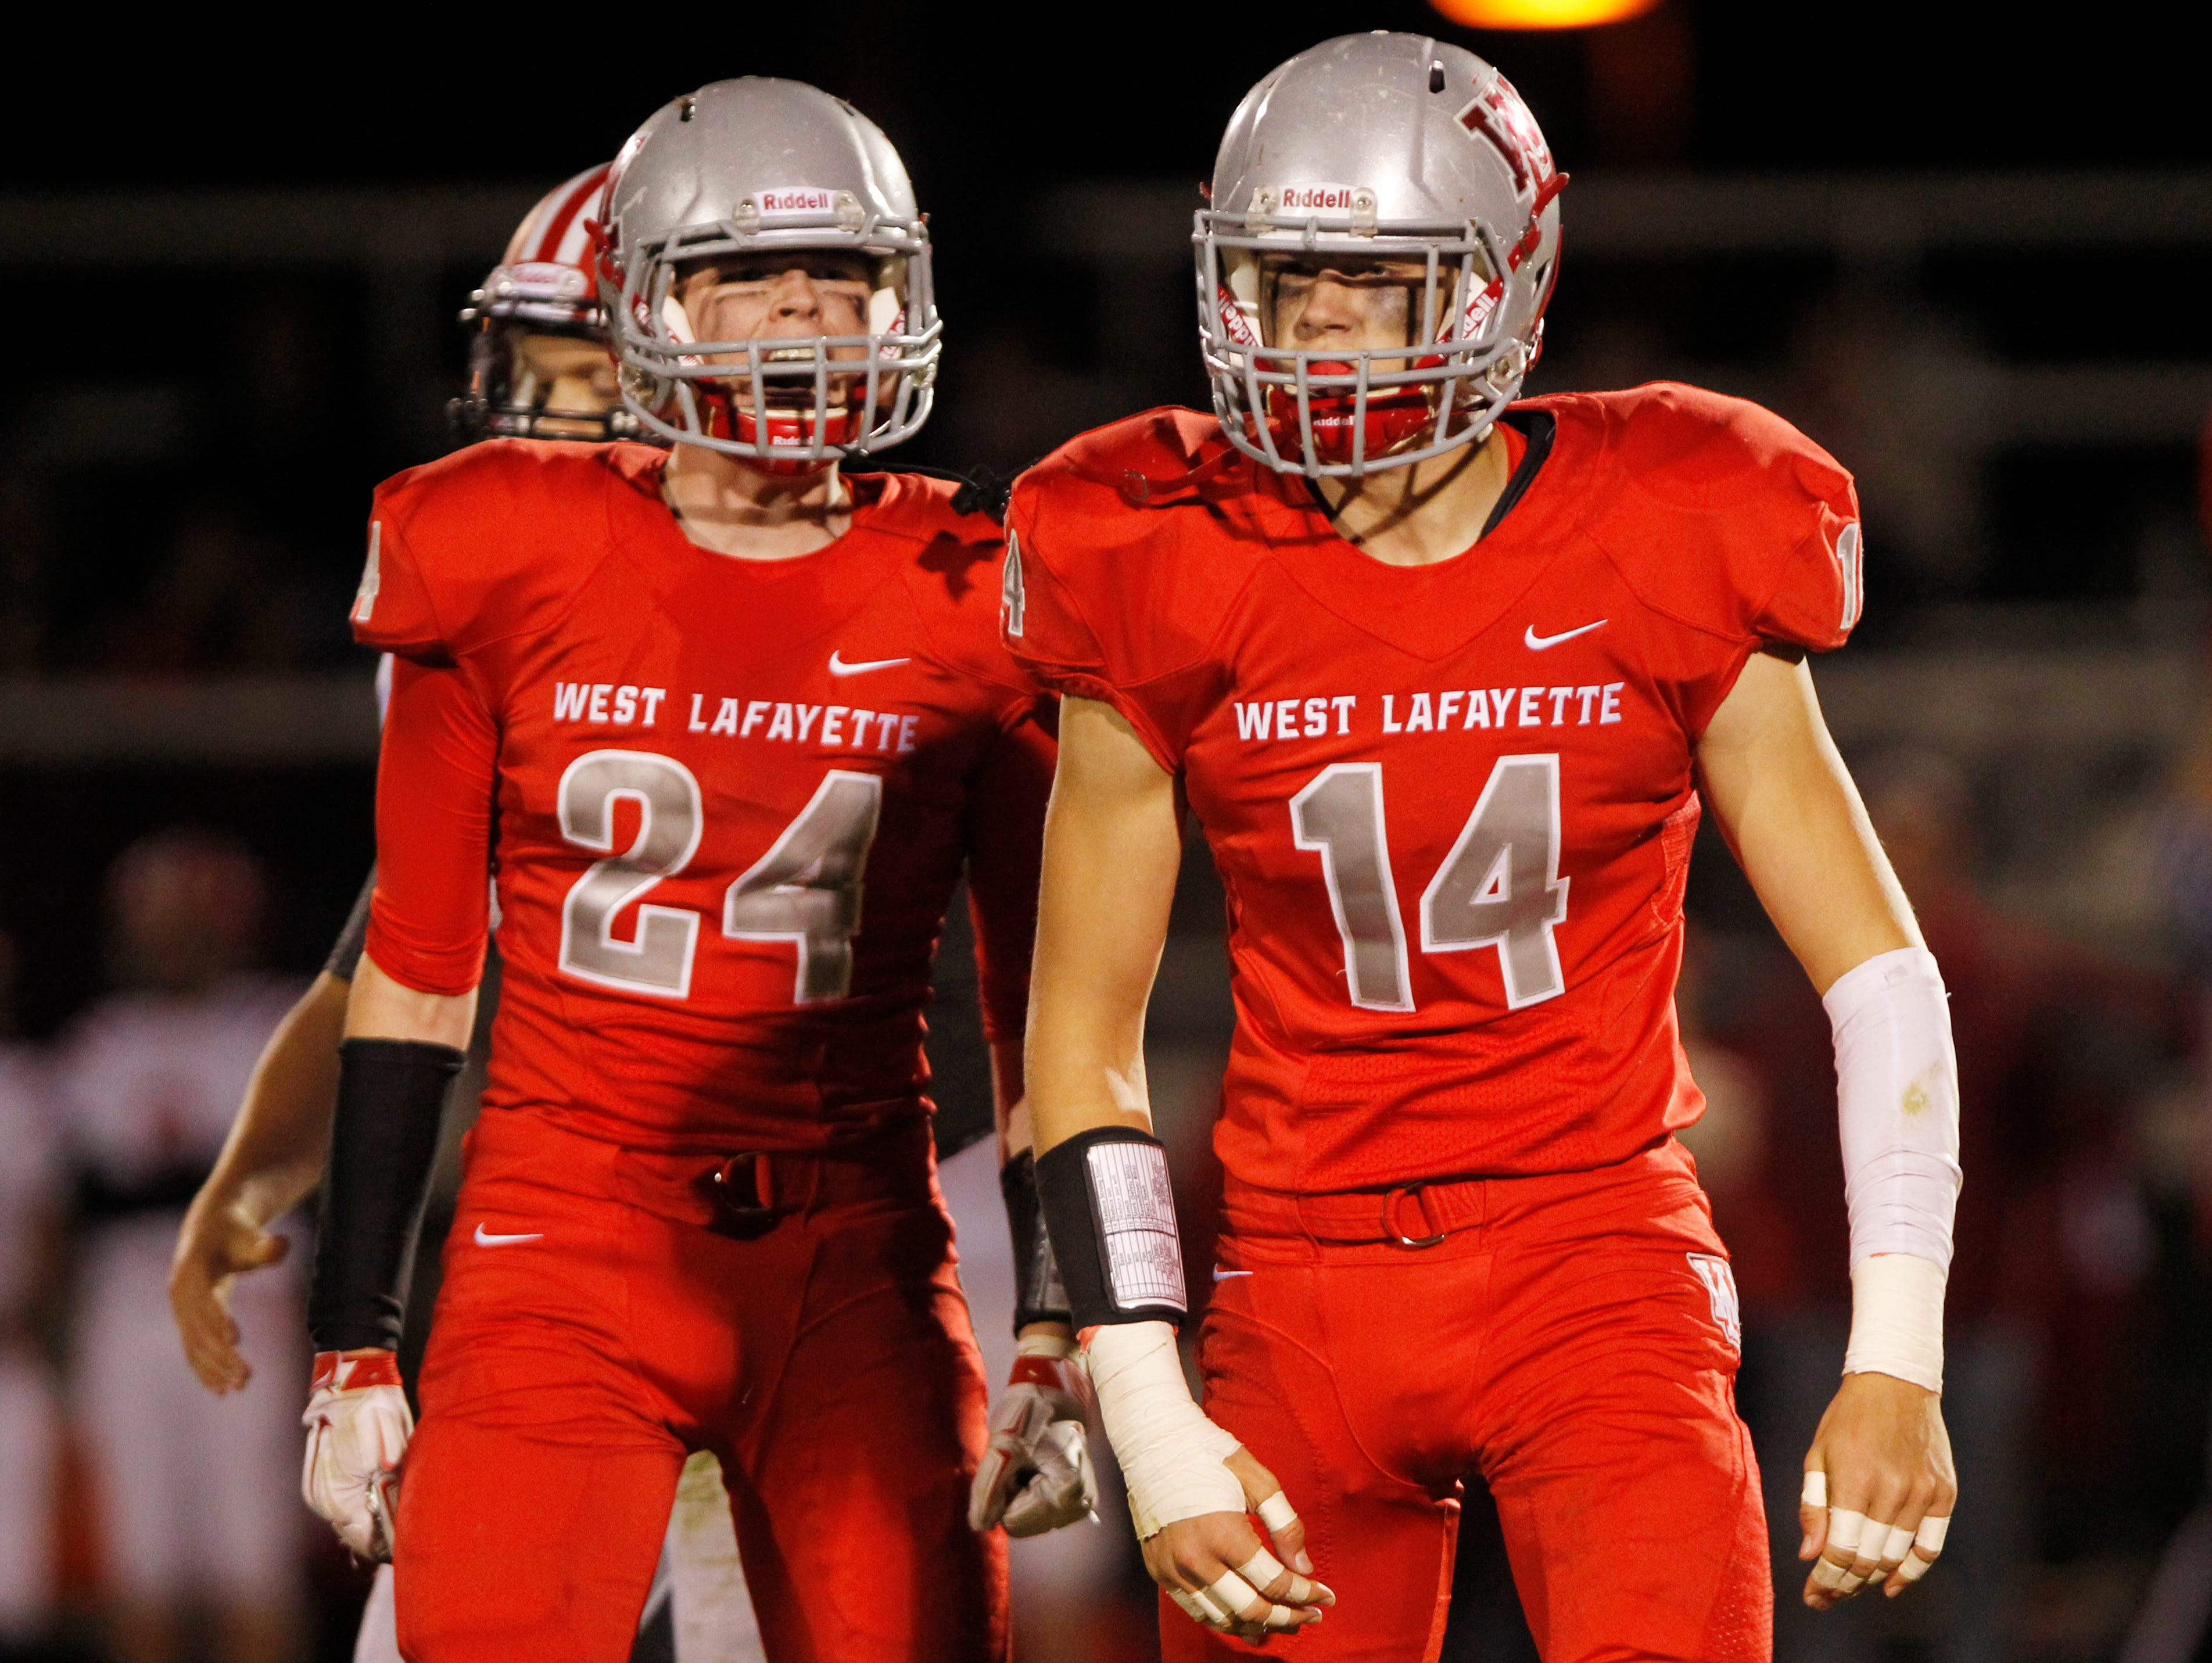 Sam Oates (24) and Frank Bodi (14) react after Bodi tackled Connor Cain of Twin Lakes for a loss in the third quarter Friday, October 9, 2015, in West Lafayette. West Lafayette defeated Twin Lakes 56-6.